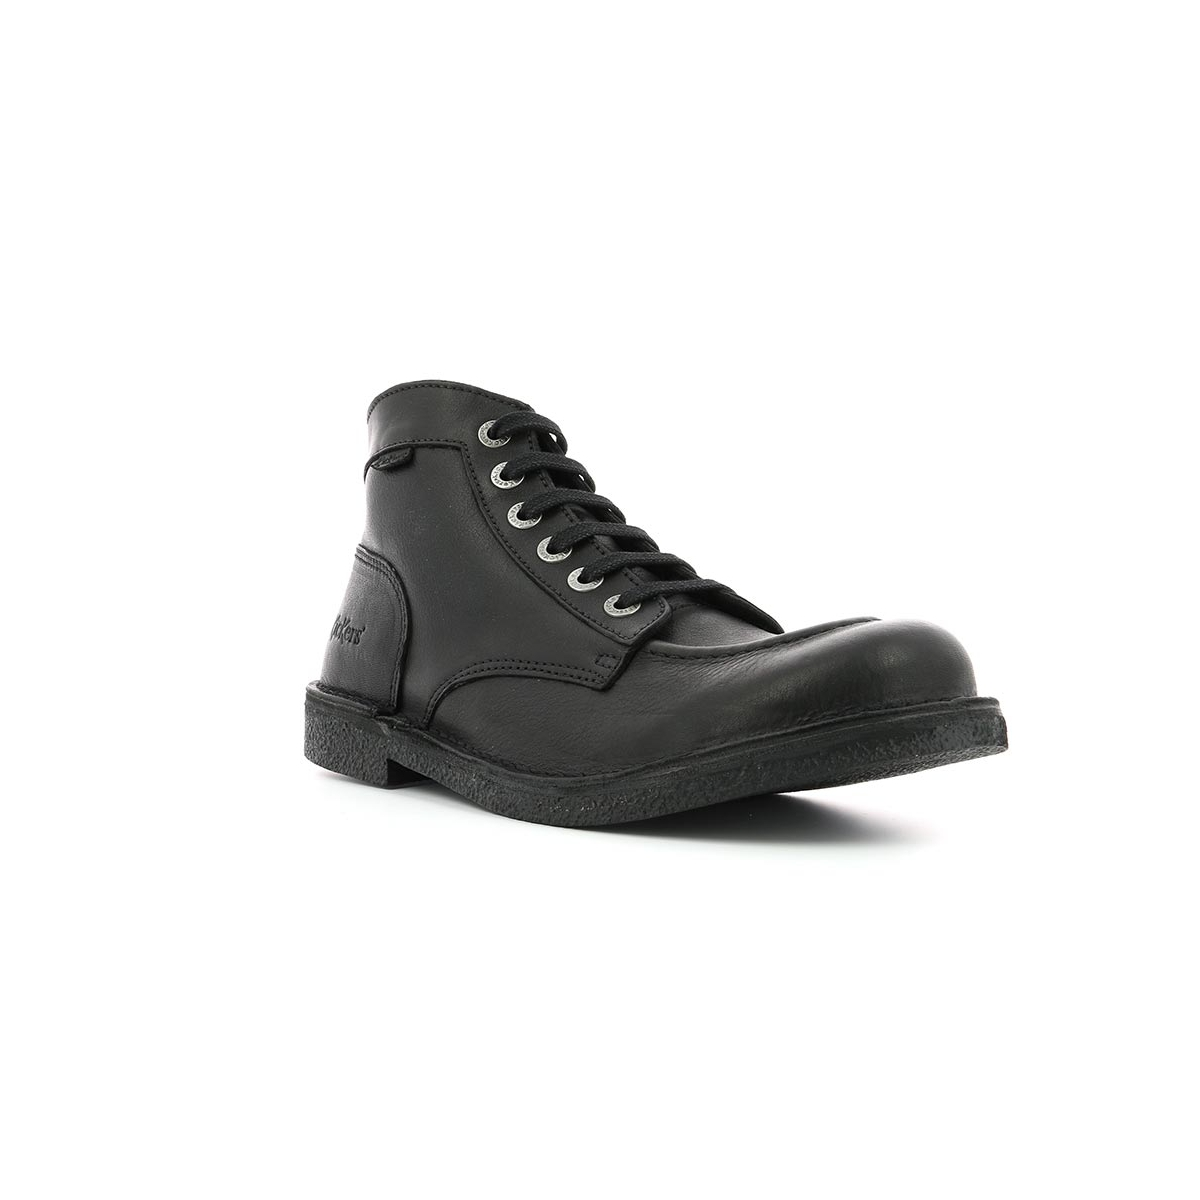 Pour Homme Boots Kickers Homme product H9W2eDIYbE